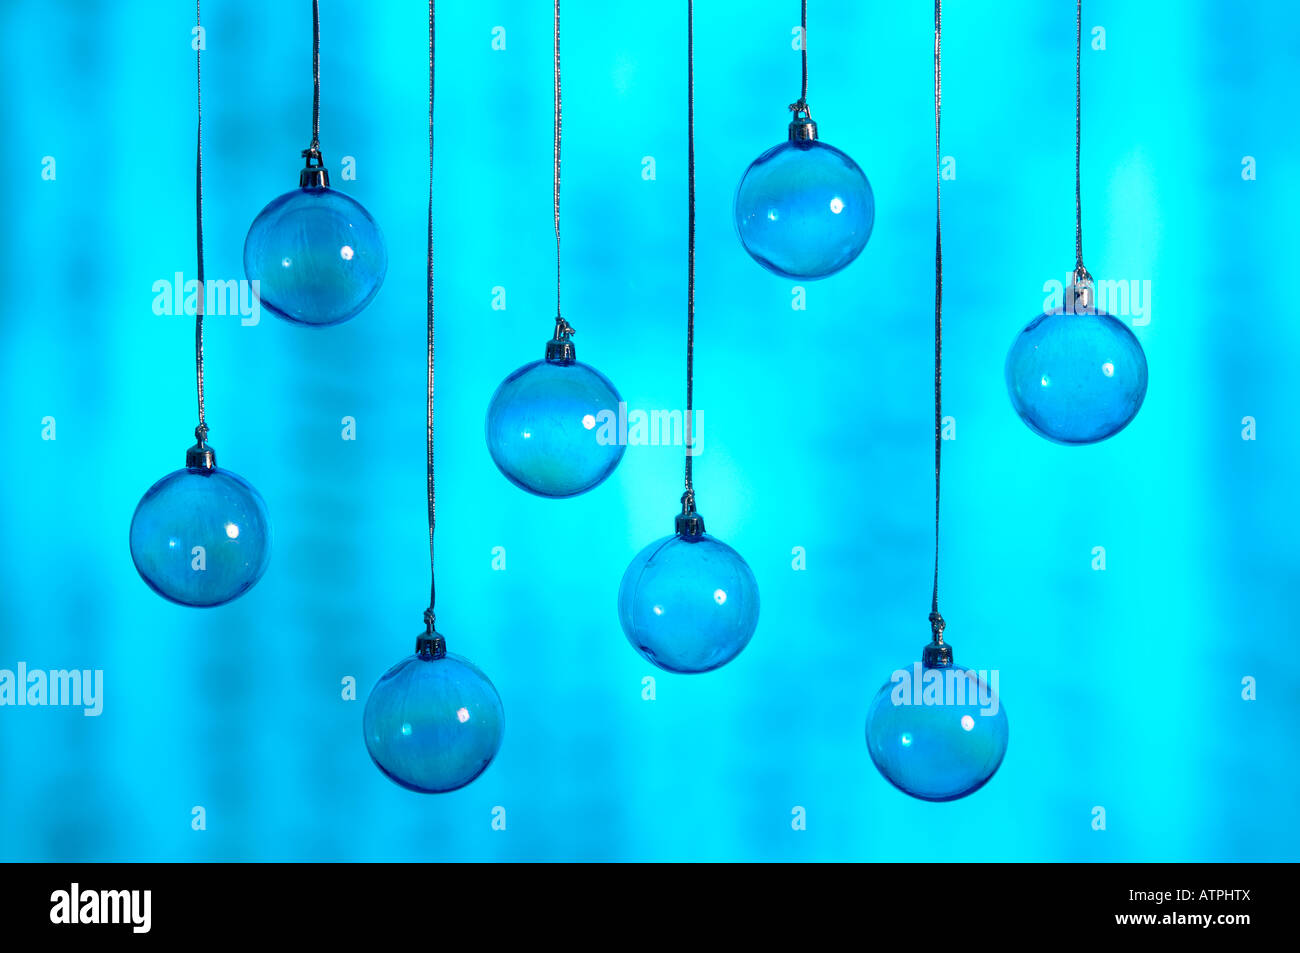 8 blue christmas baubles hanging on silver thread - Stock Image